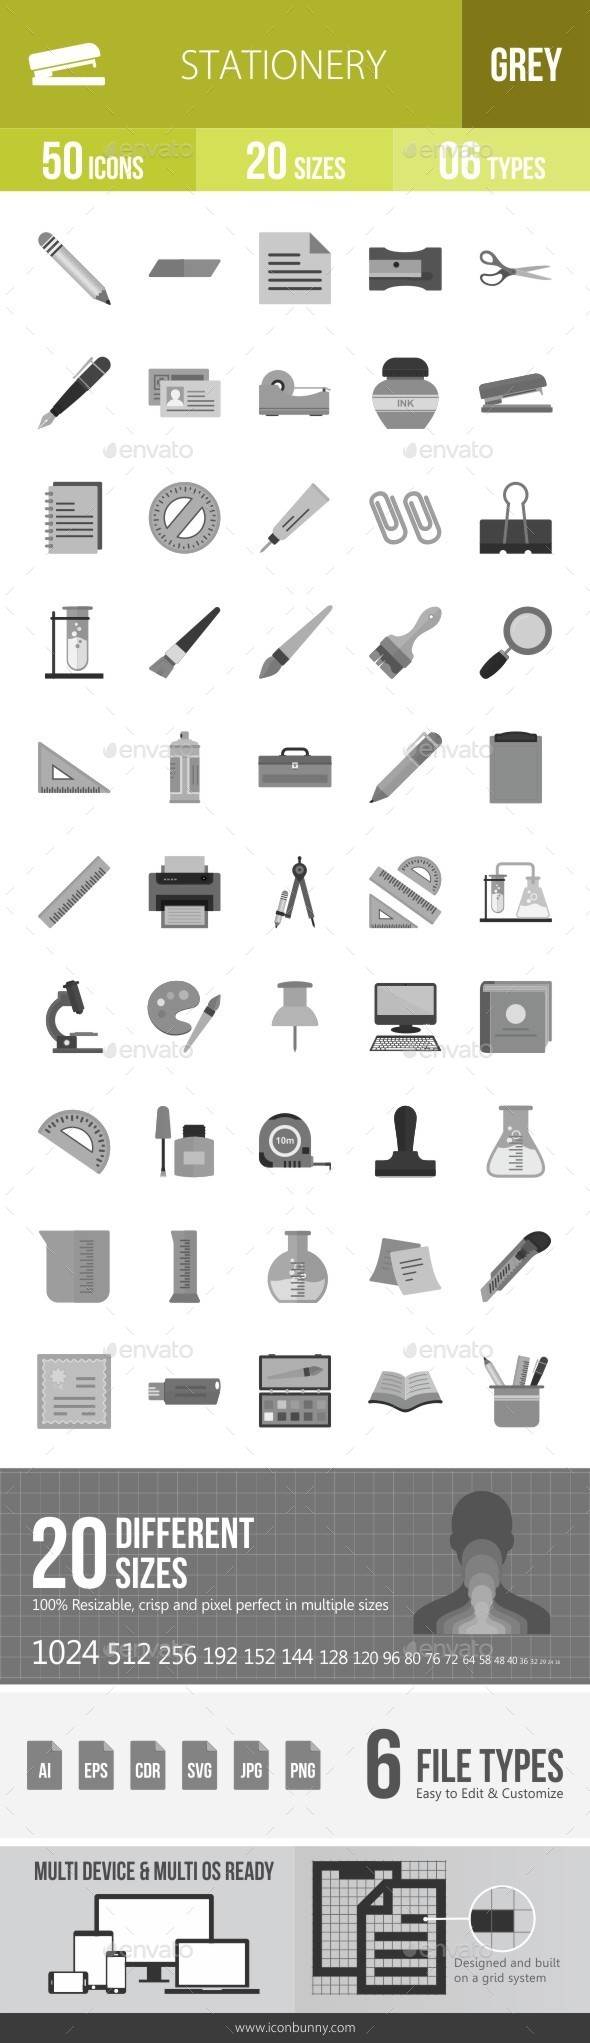 Stationery Greyscale Icons - Icons